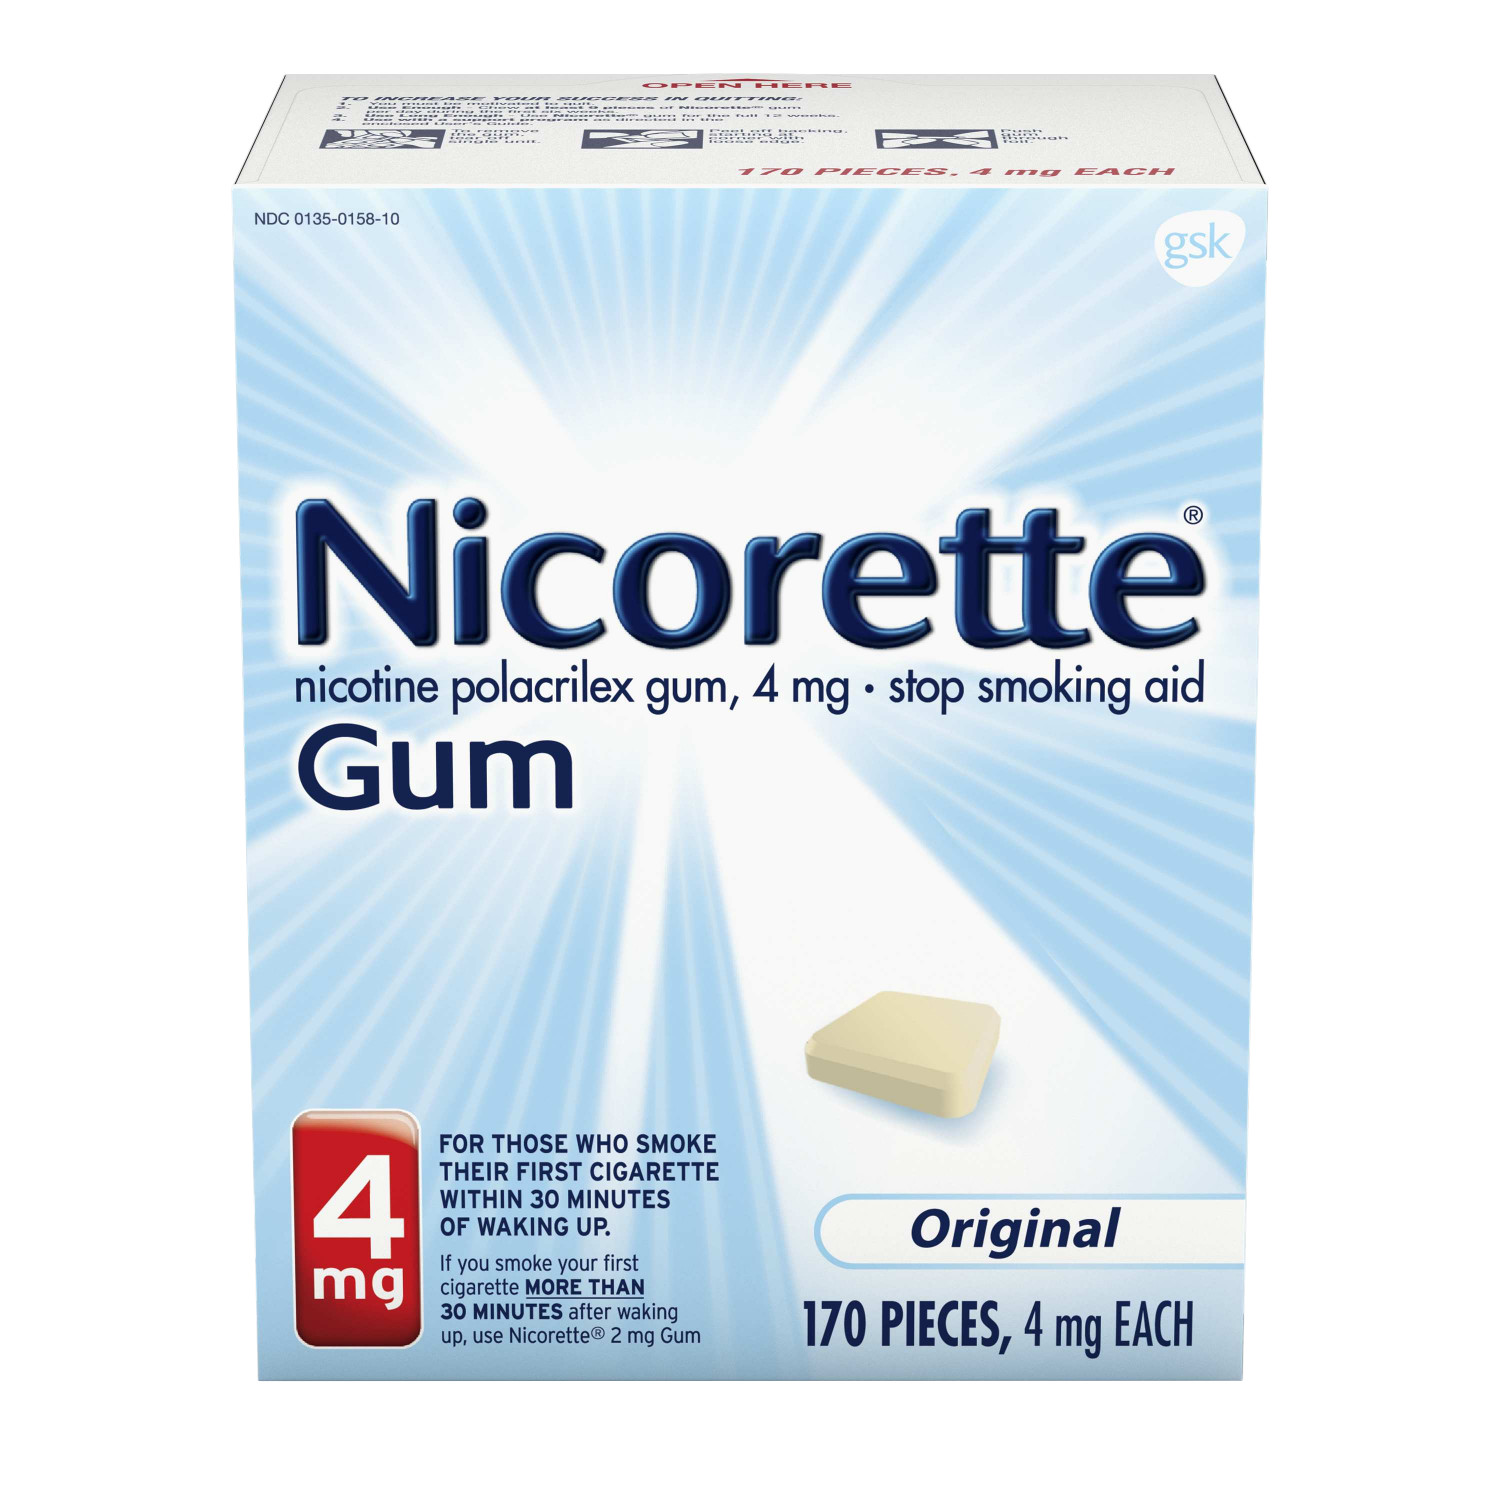 Nicorette Nicotine Gum to Stop Smoking, 4mg, Original, 170 Count